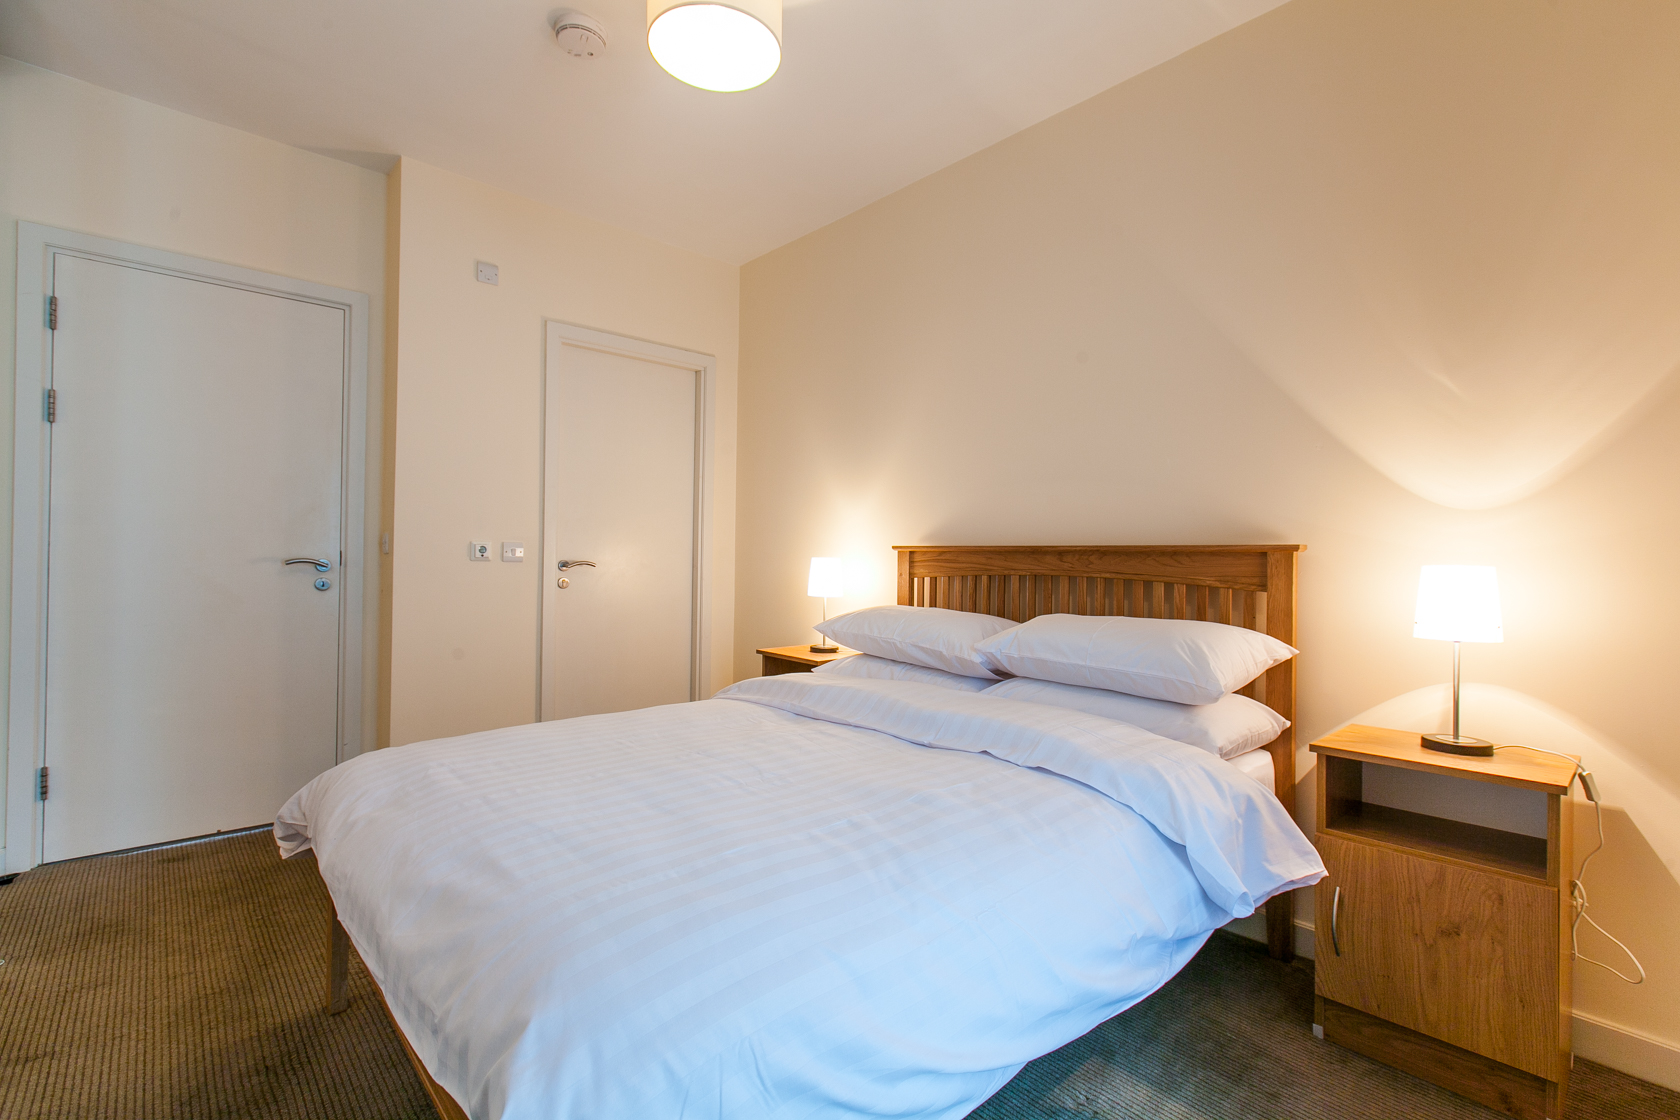 Bed 2 at The Forum Sandyford Apartment, Sandyford, Dublin - Citybase Apartments